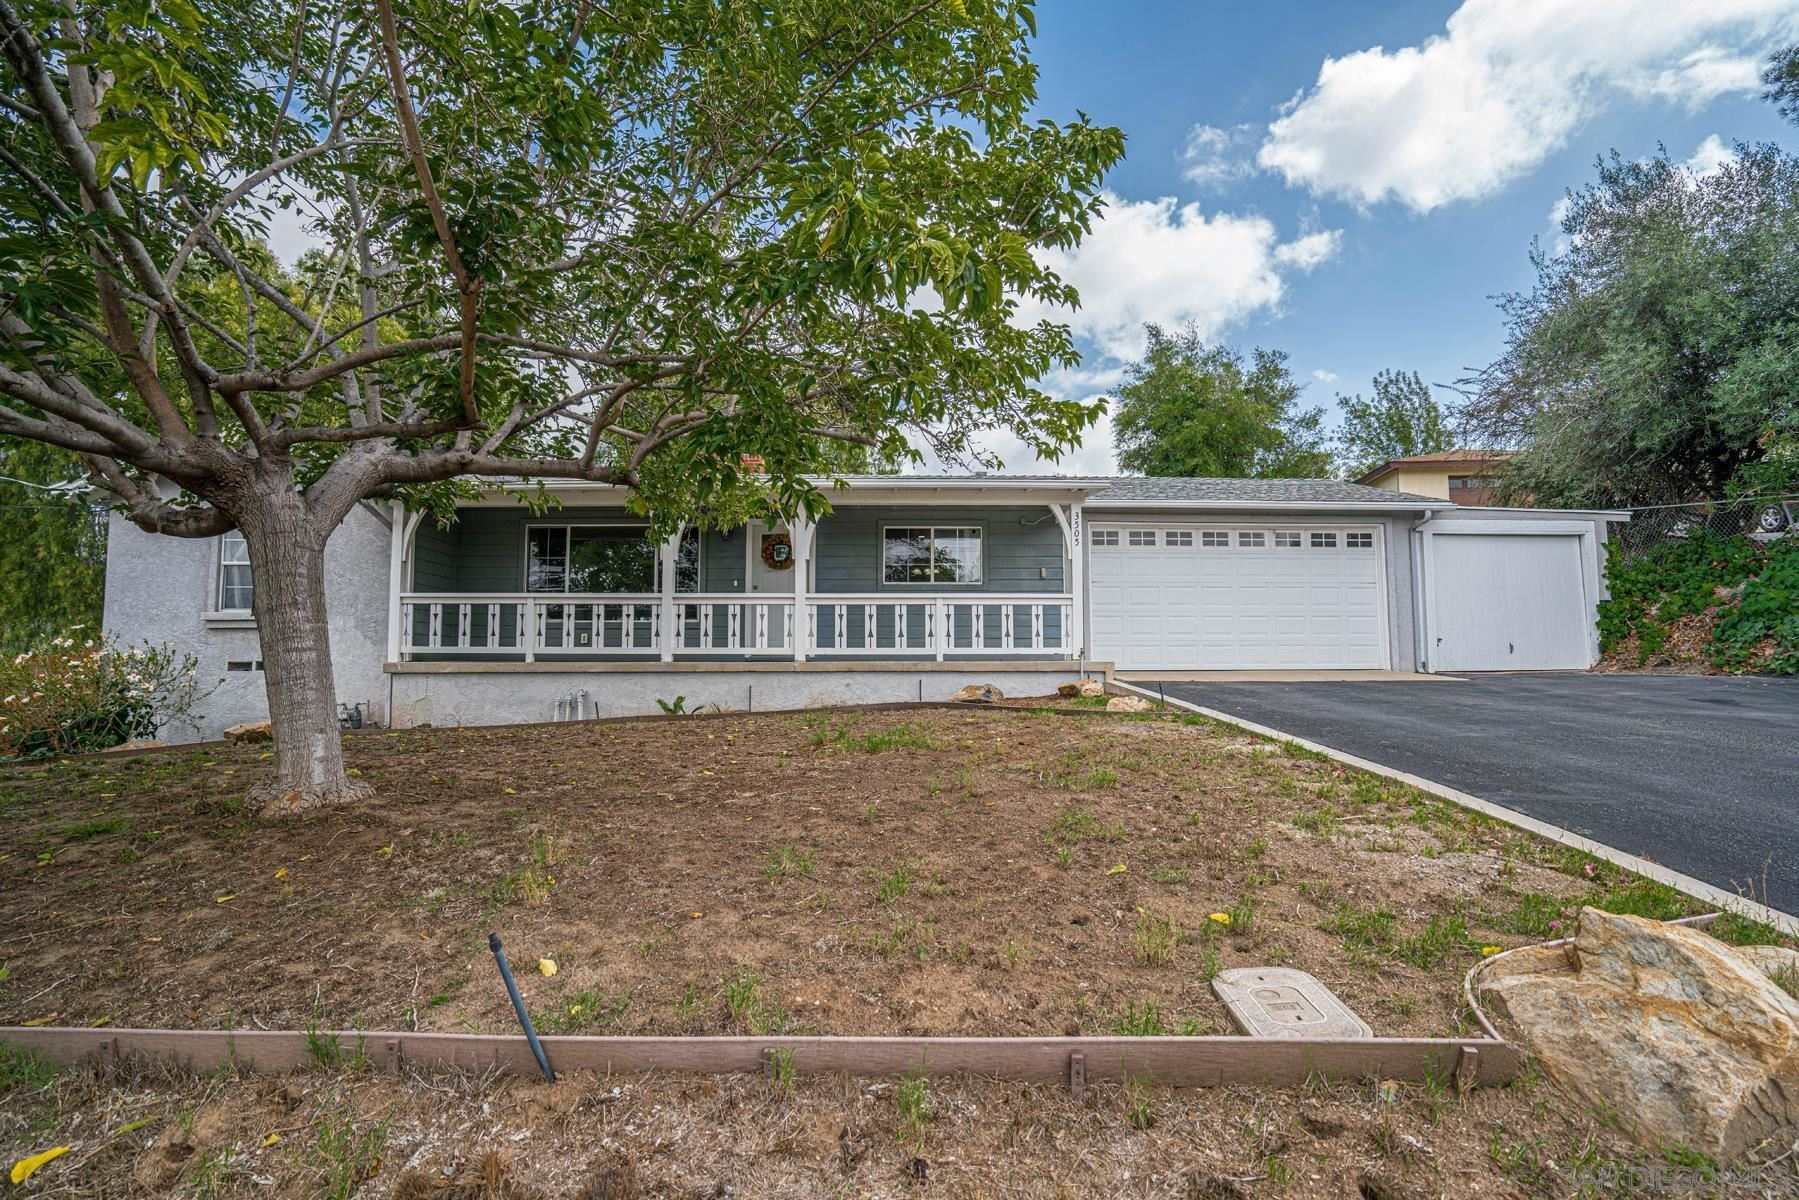 Photo of 3505 Calavo Dr, Spring Valley, CA 91978 (MLS # 210027859)